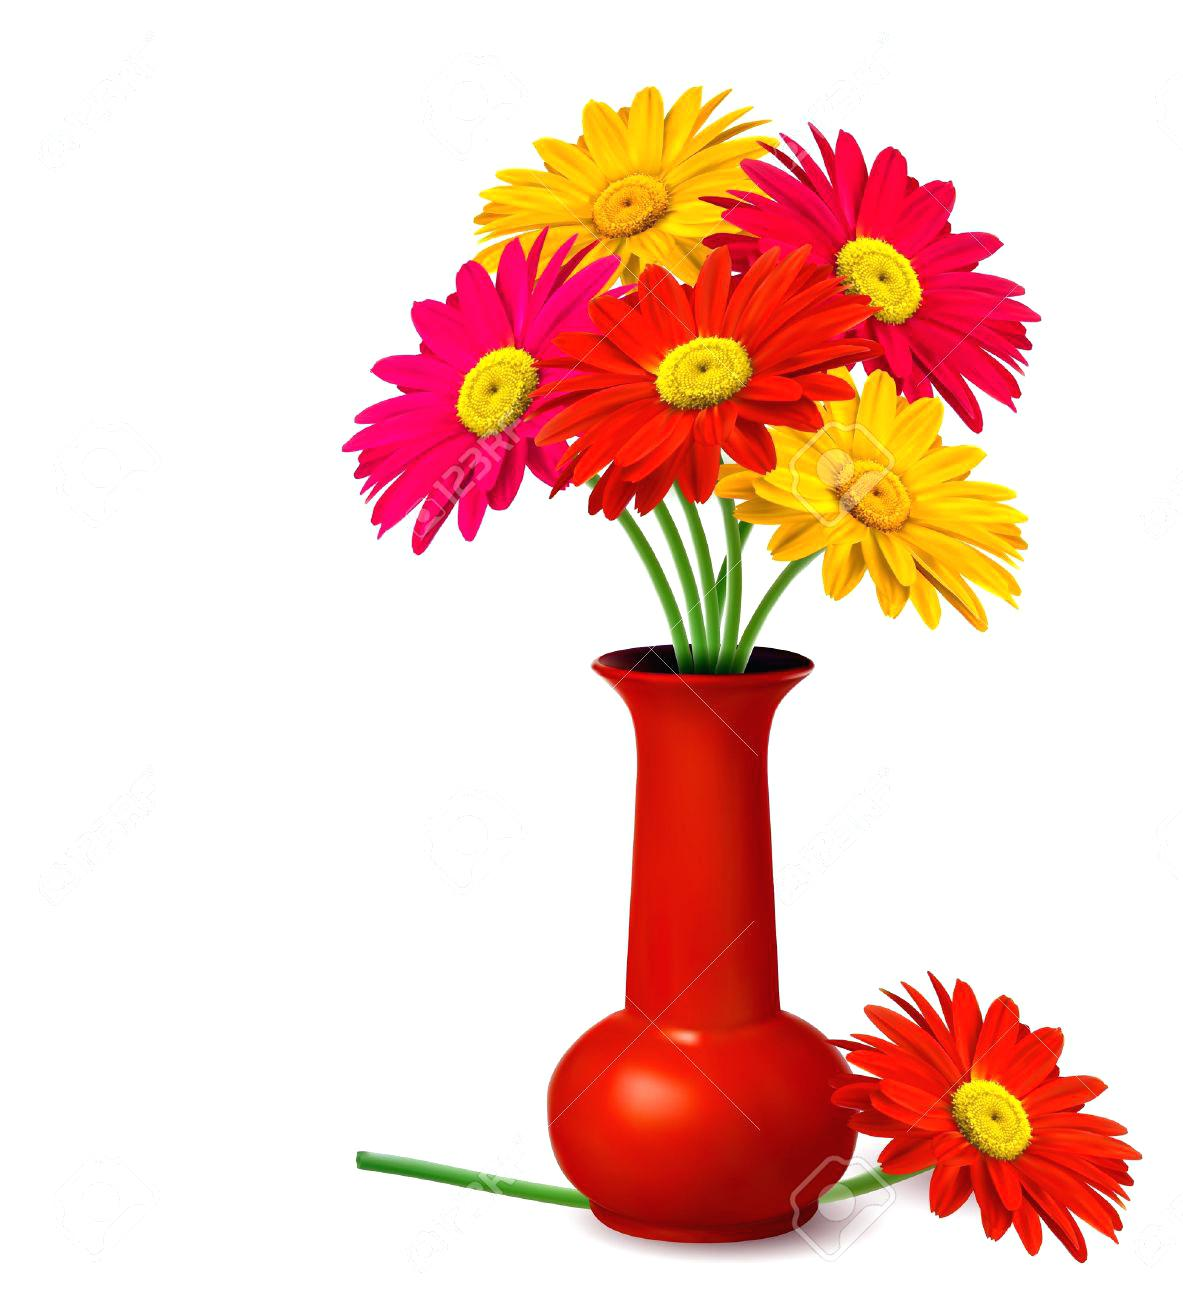 1183x1300 Flowers Vases Wholesale Vase Clip Art Drawing